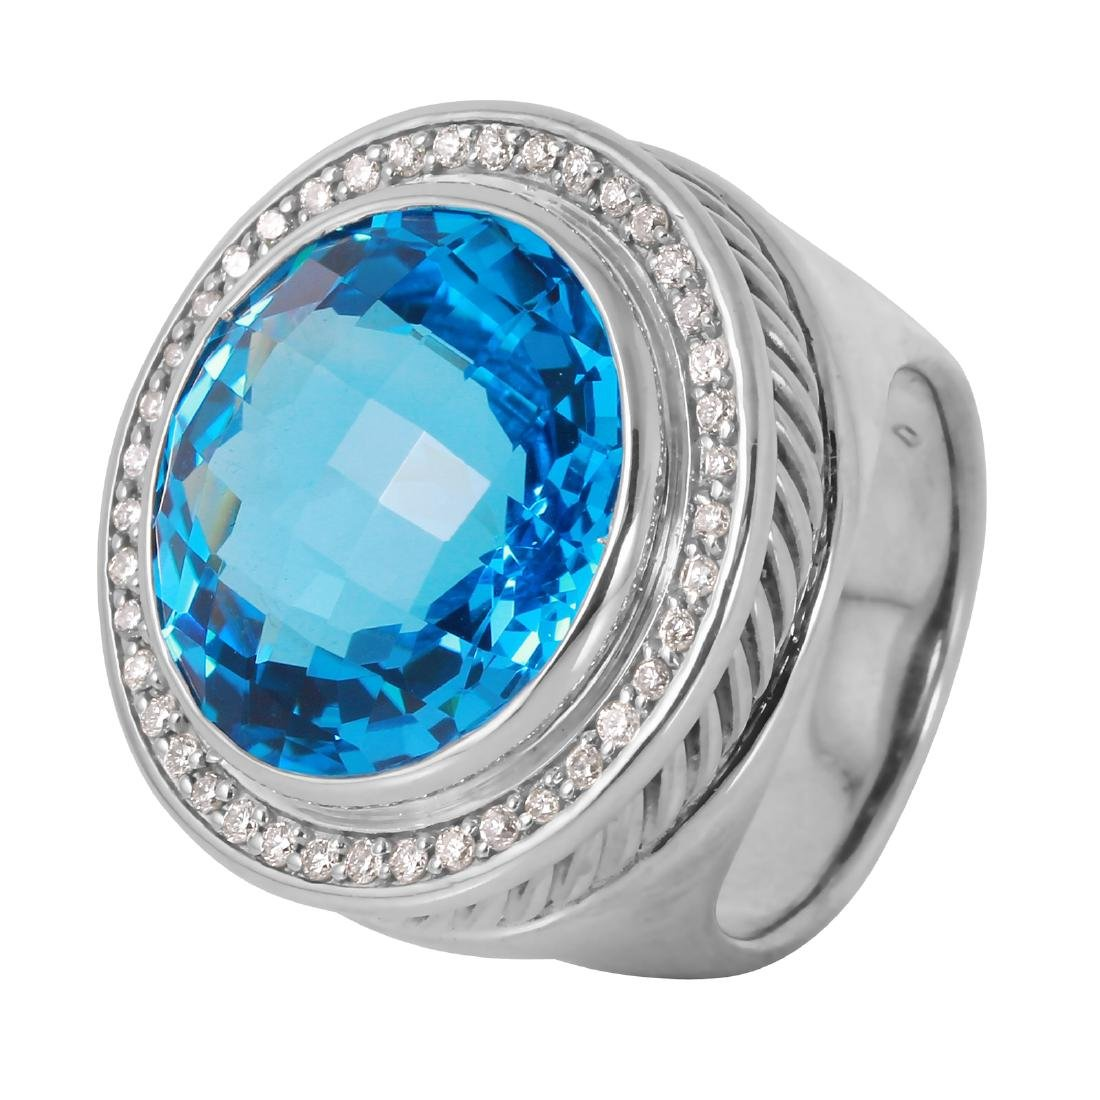 David Yurman Diamond Albion Blue Topaz Ring